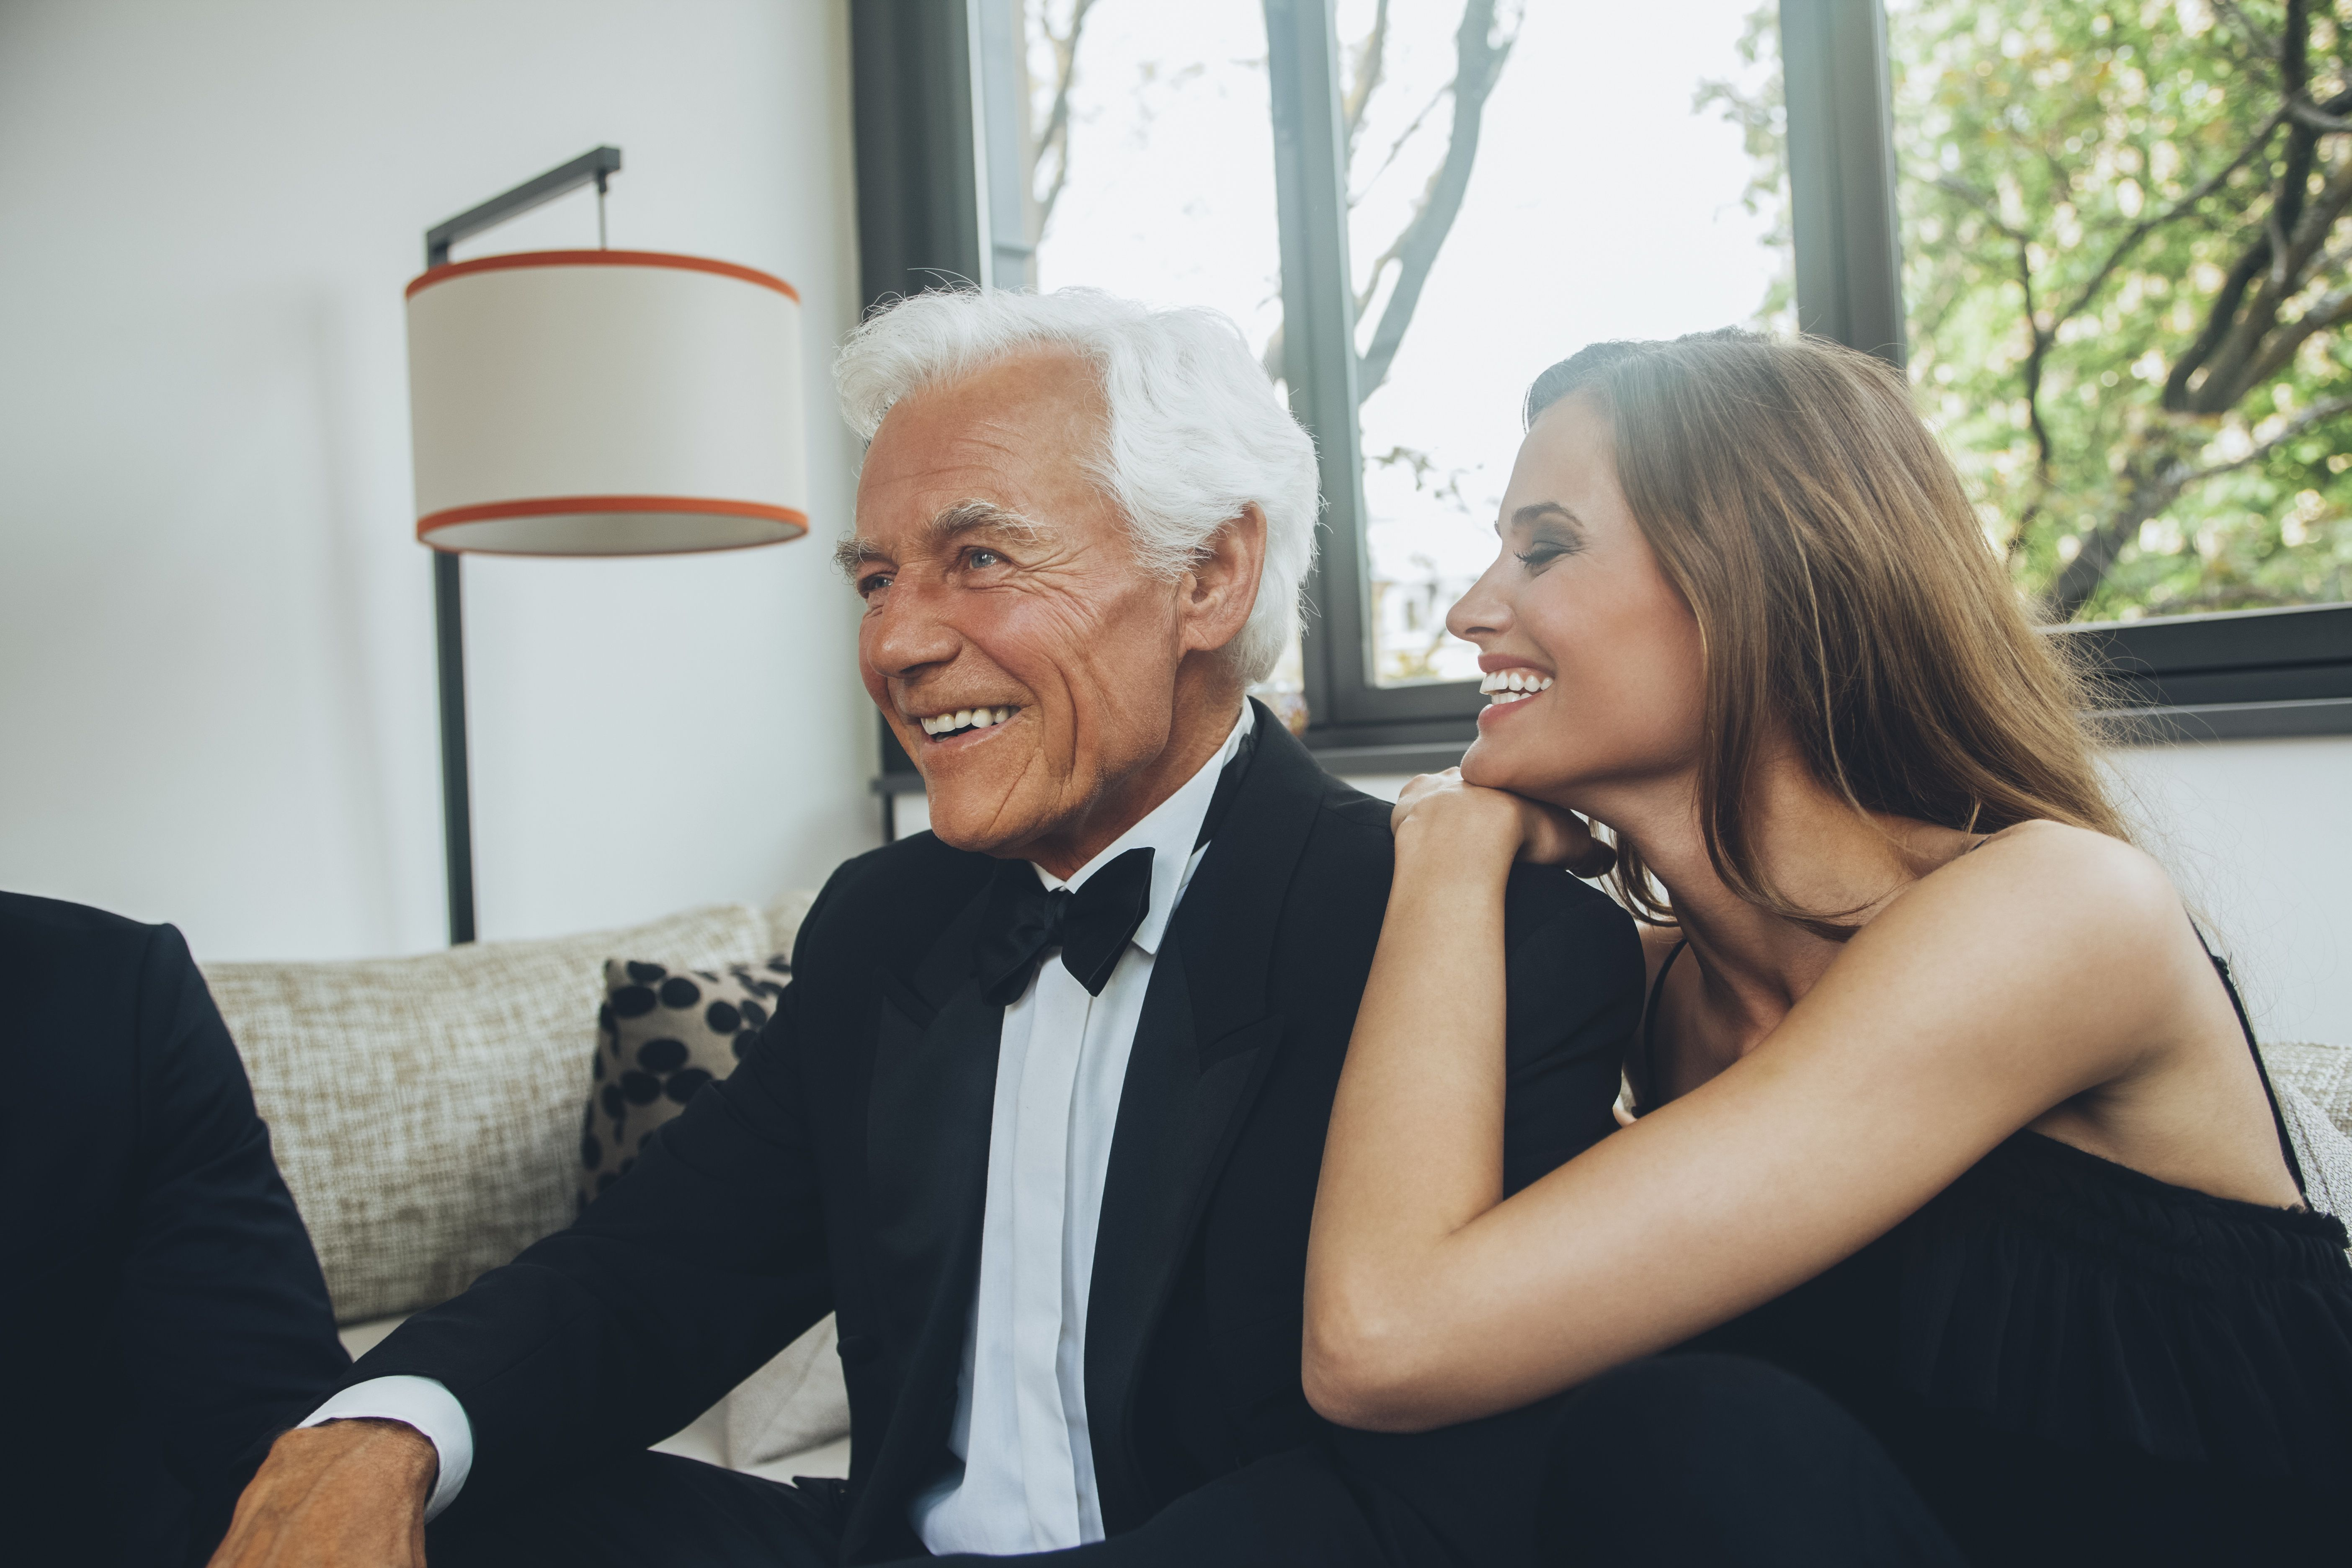 Realities of dating an older man pros